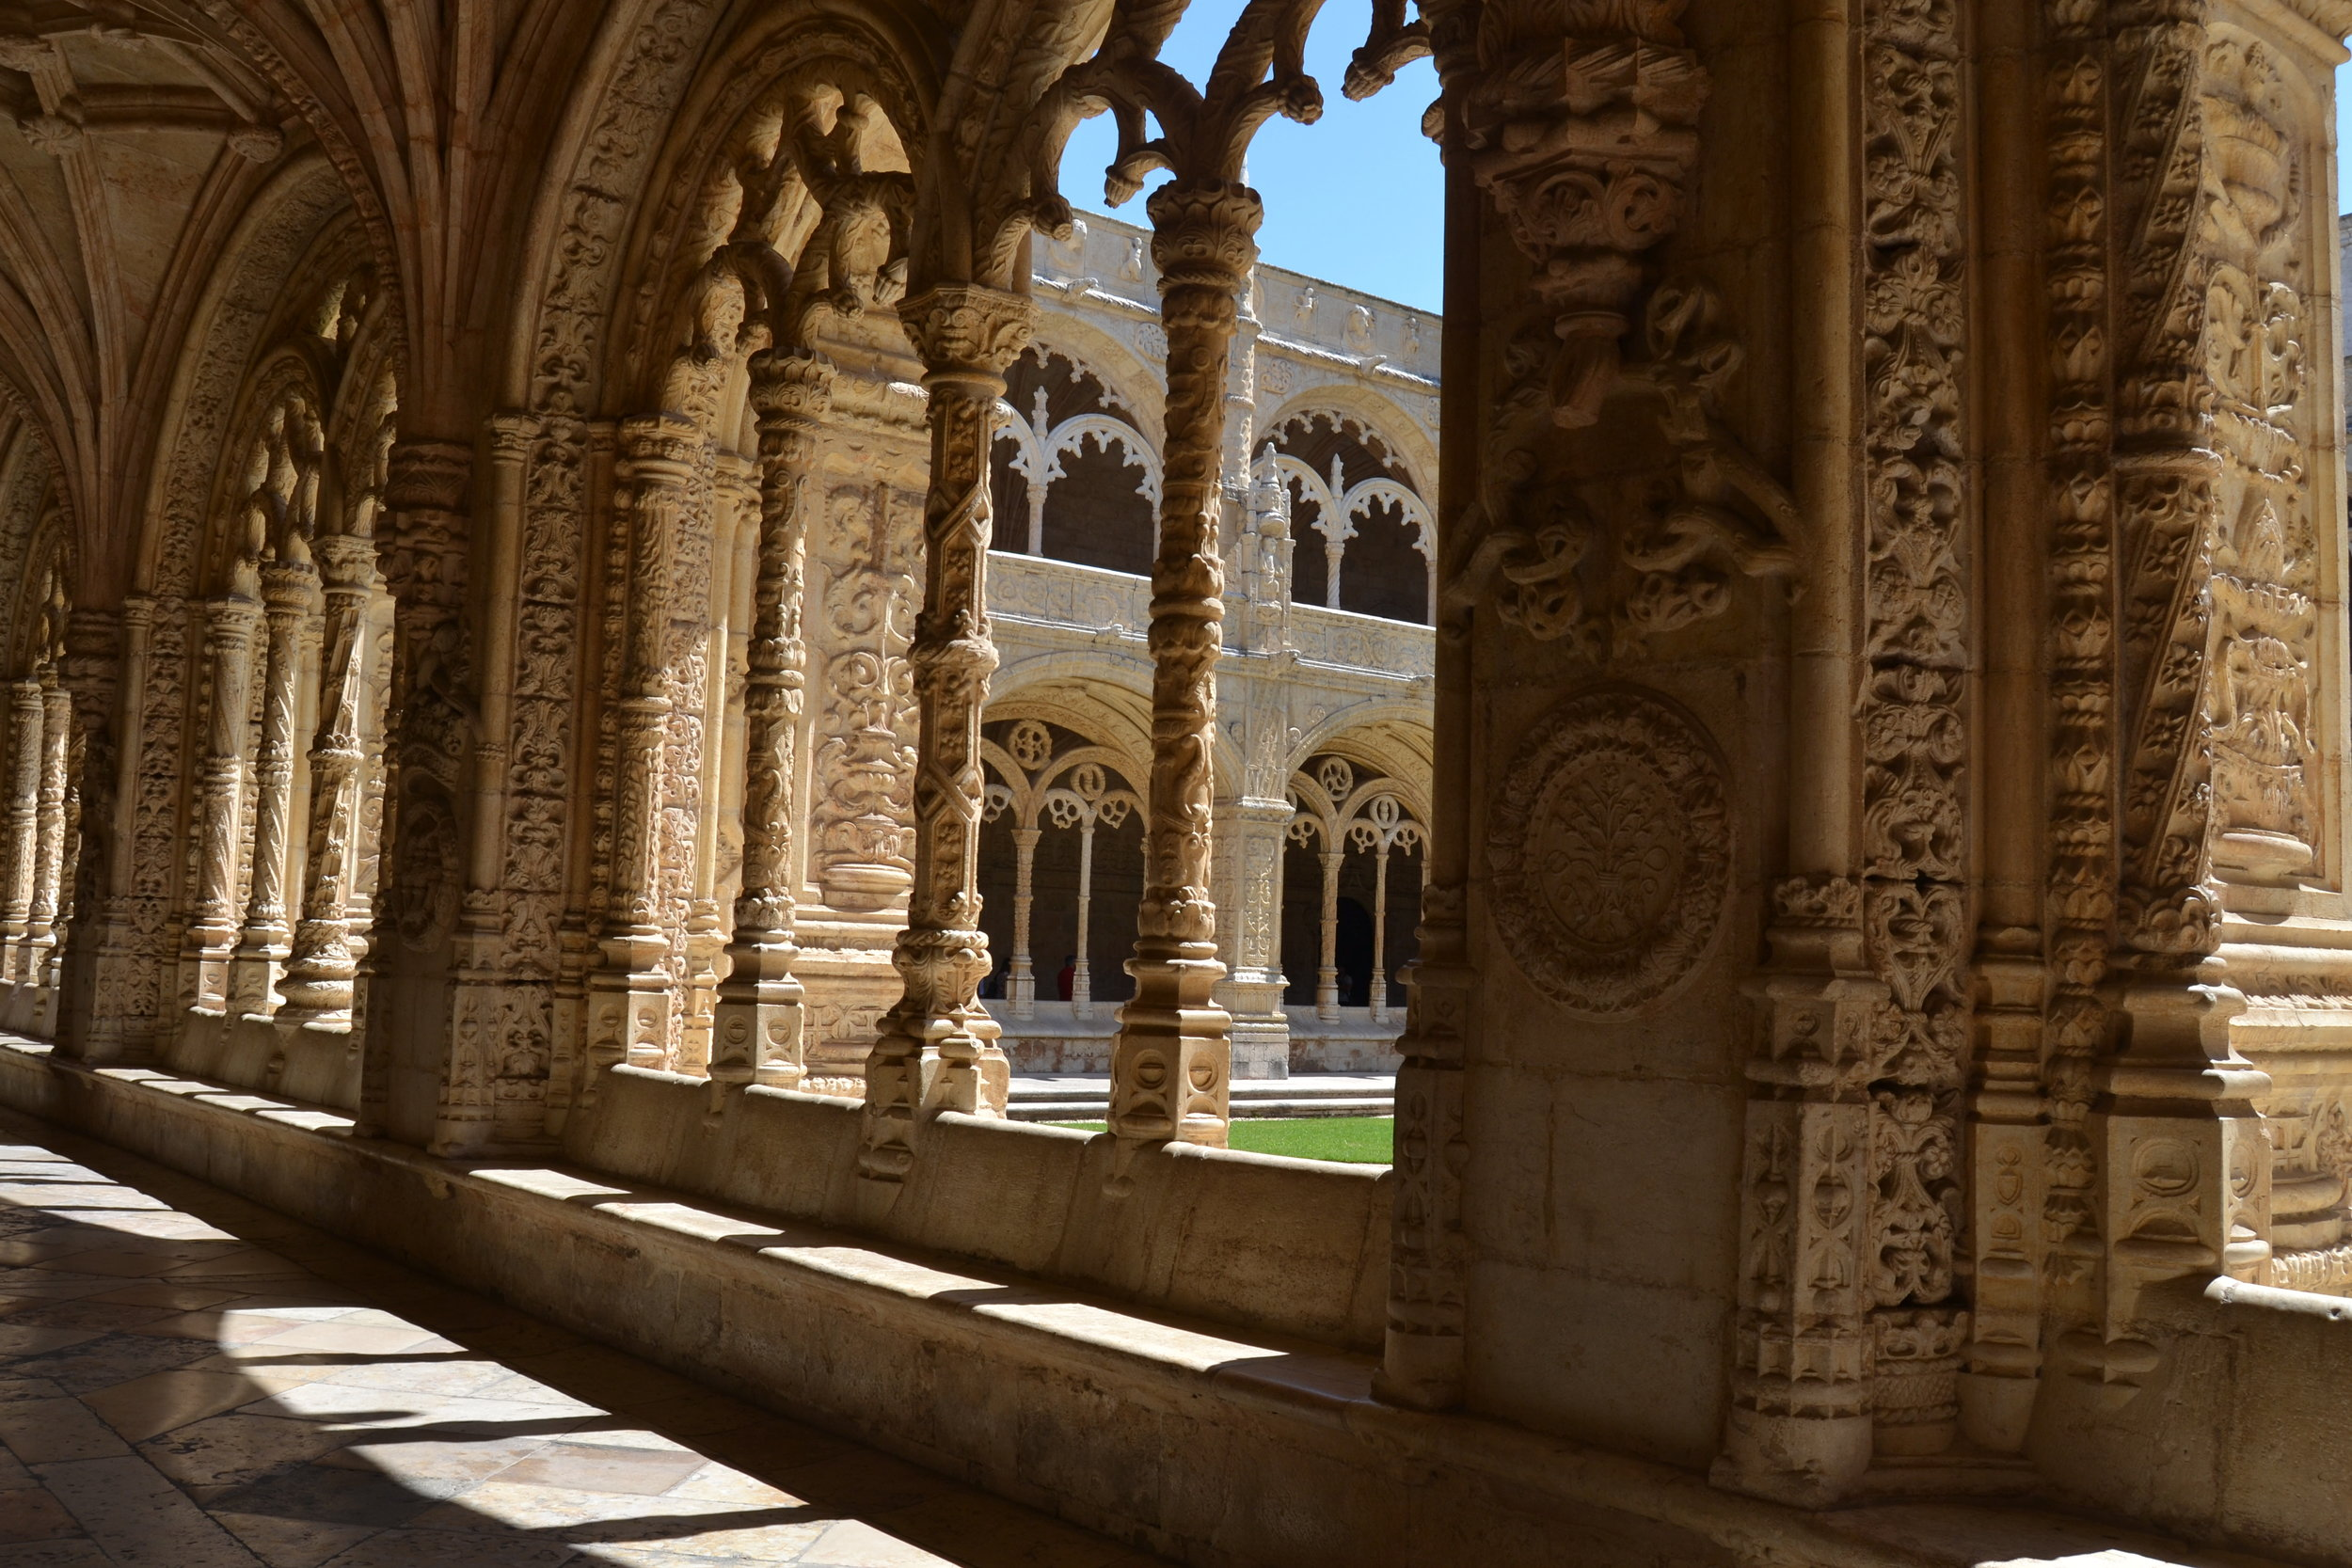 The cloister in the Monastery of St. Jerome (Jeronimos Monastery)